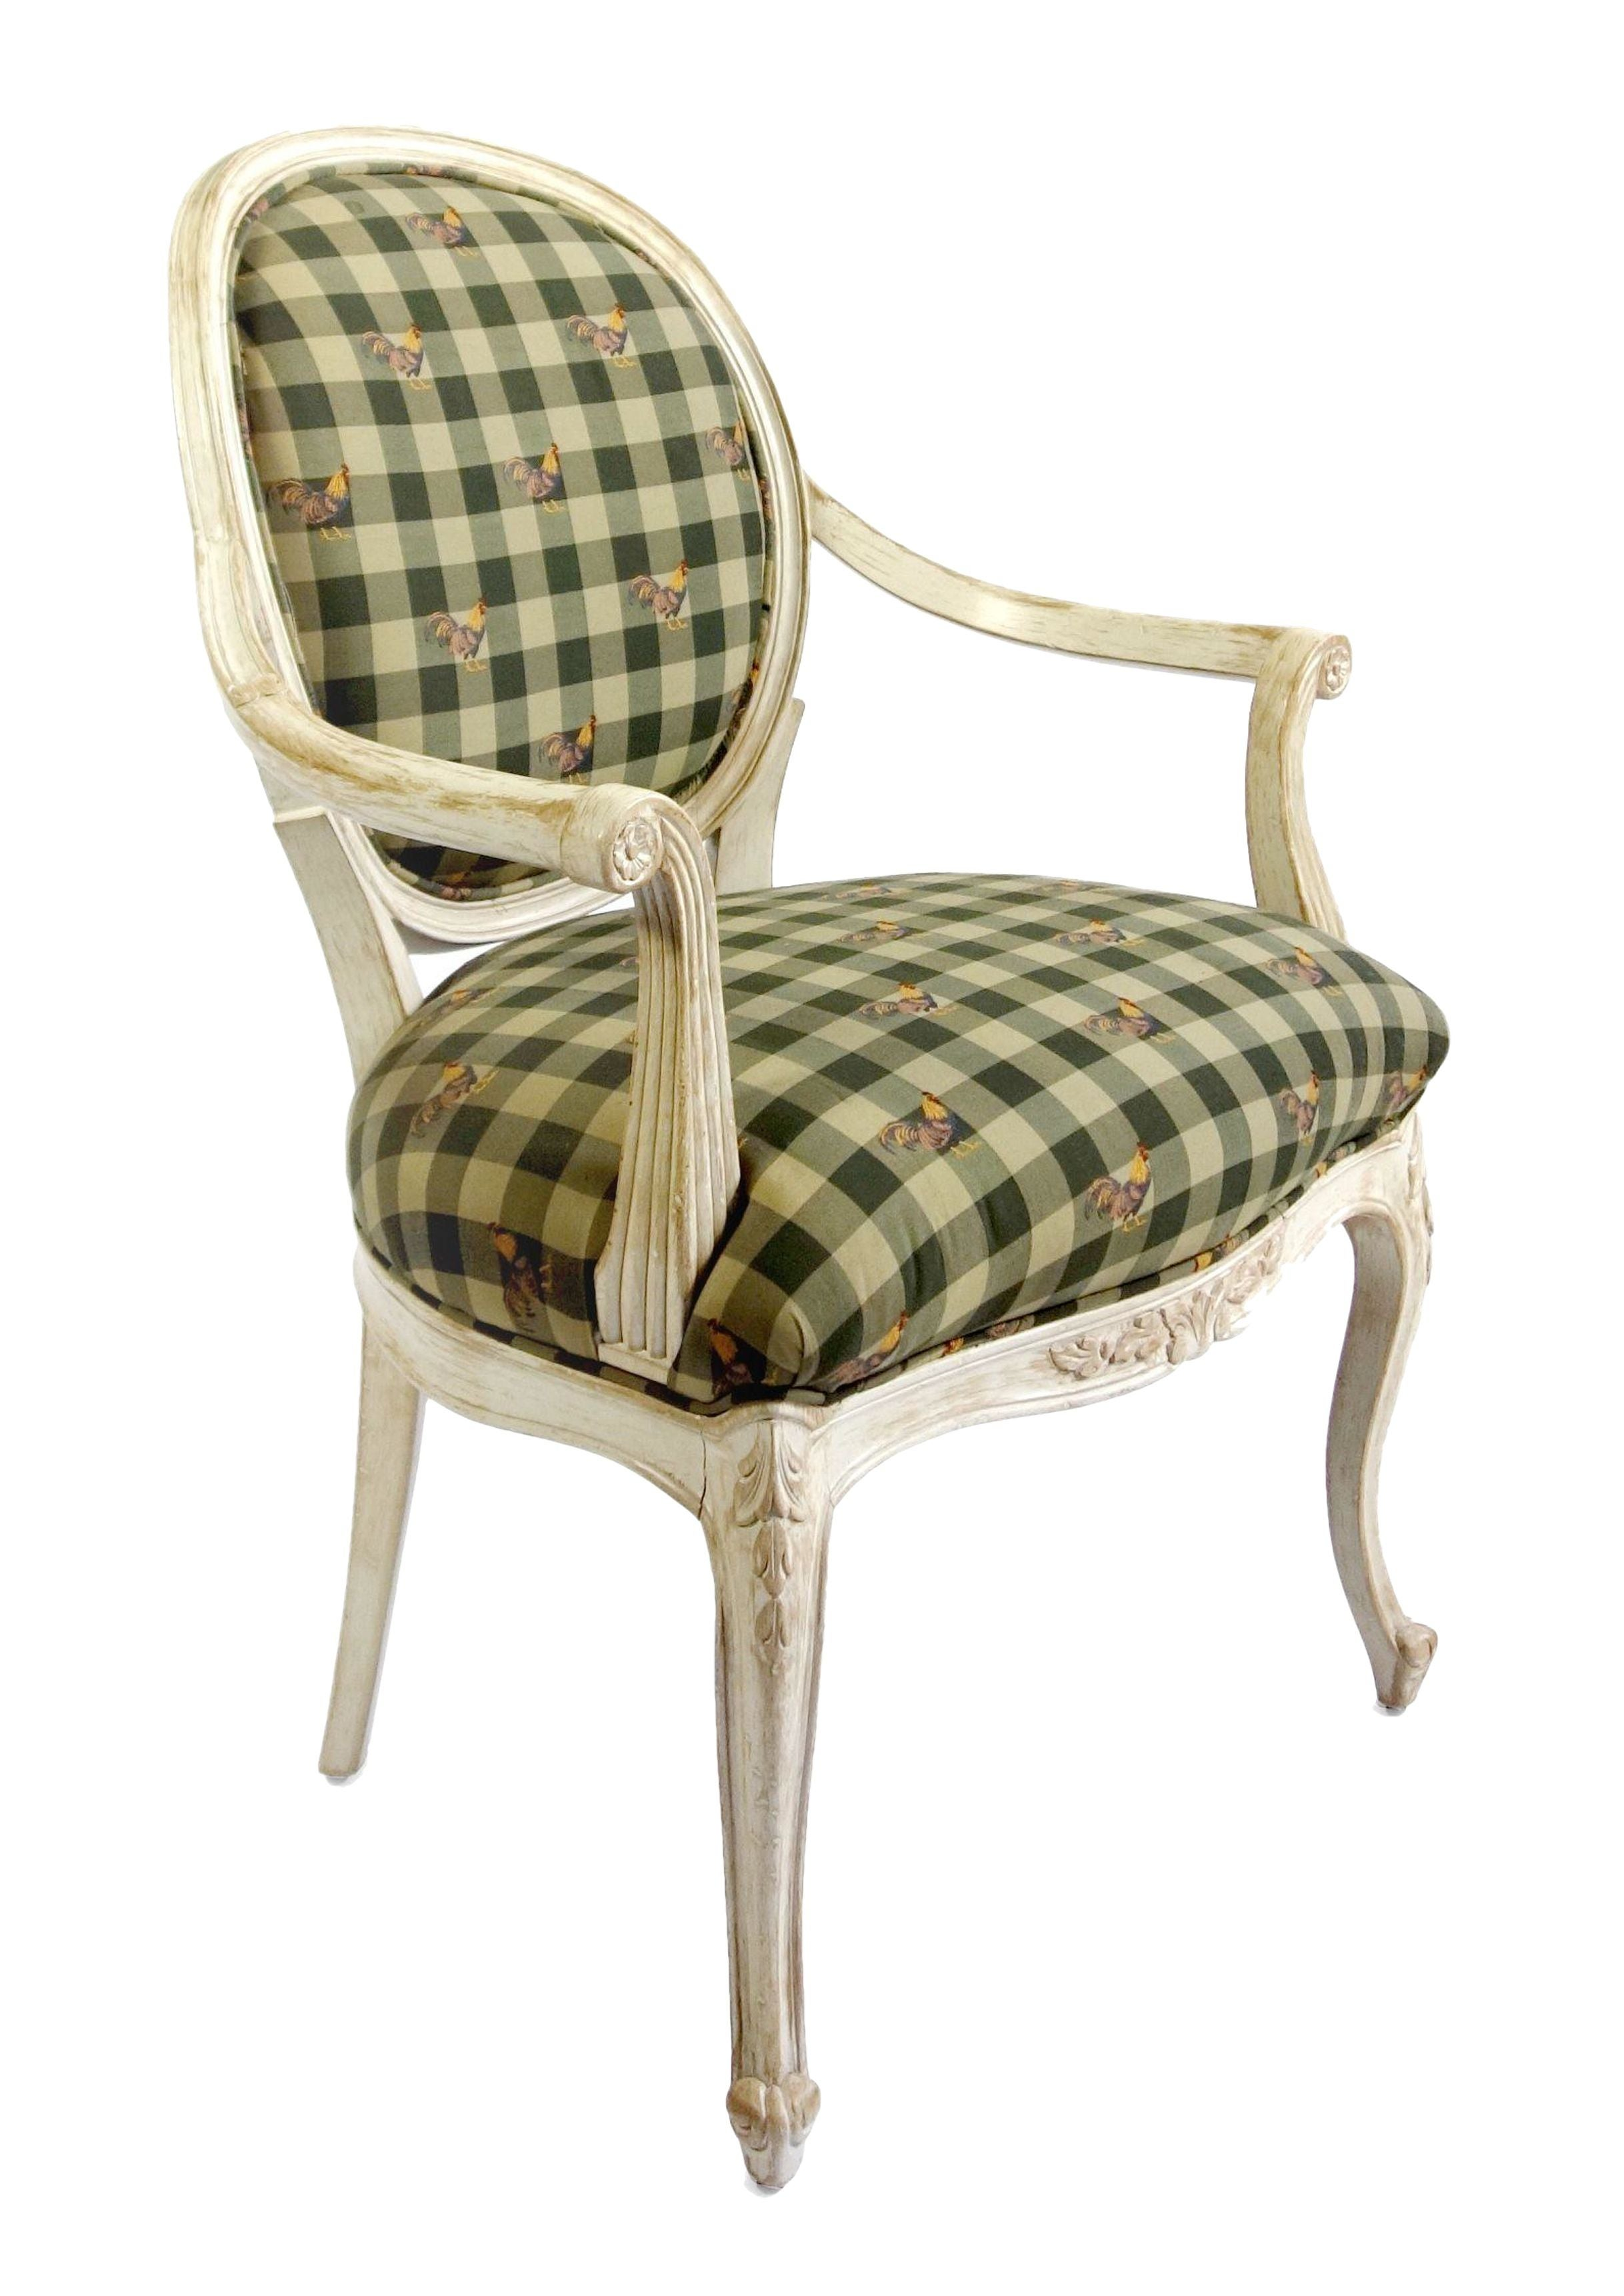 Superb Louis Style Chair With Gingham U0026 Rooster Fabric